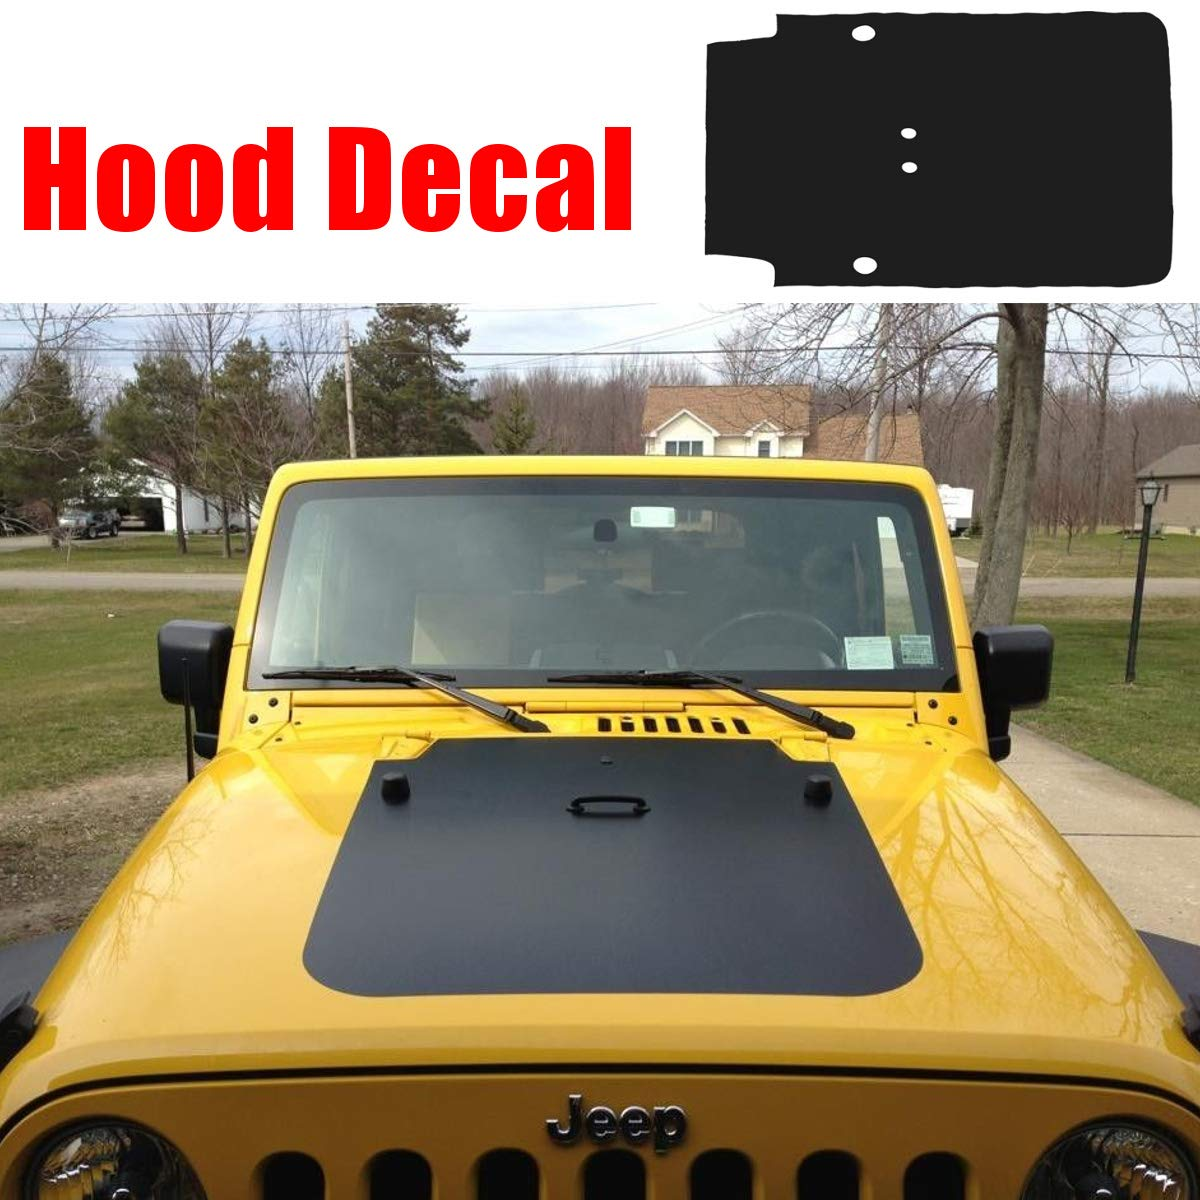 Sala store 83x45cm car hood decal for jeep for wrangler jk 07 18 matte black hood sticker waterproof car auto front body hood sticker amazon com